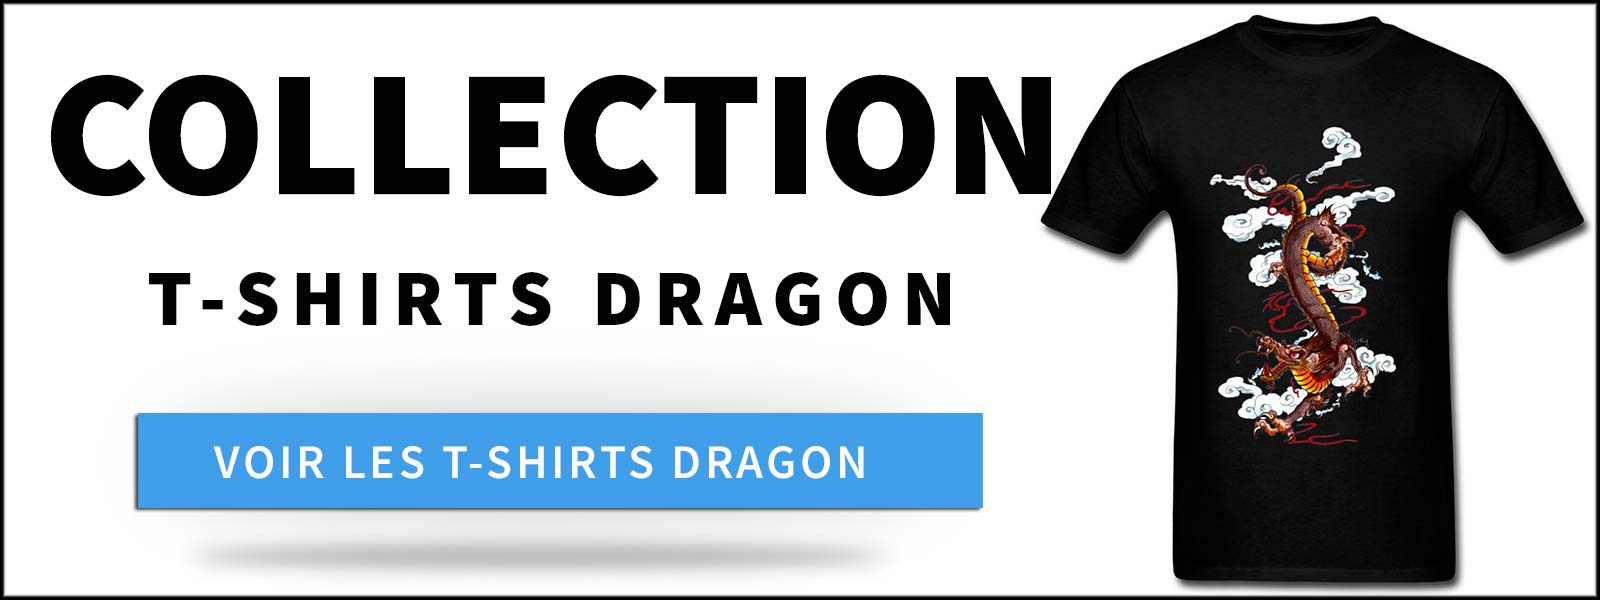 Collection t-shirt dragon